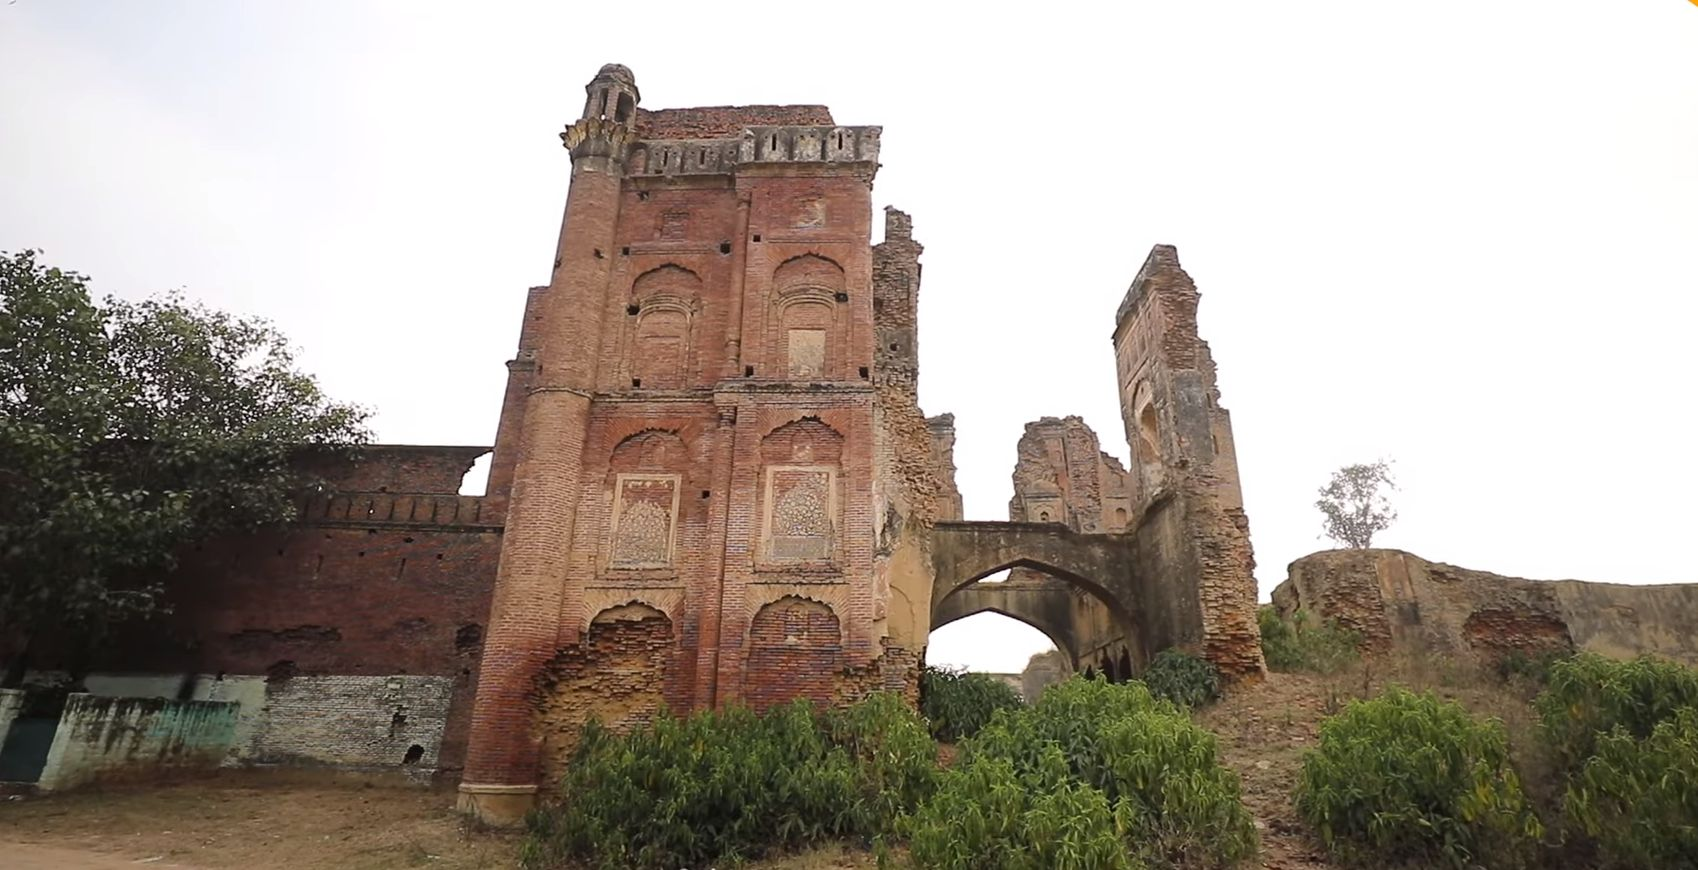 Malerkotla: A Begum in a Roofless Palace